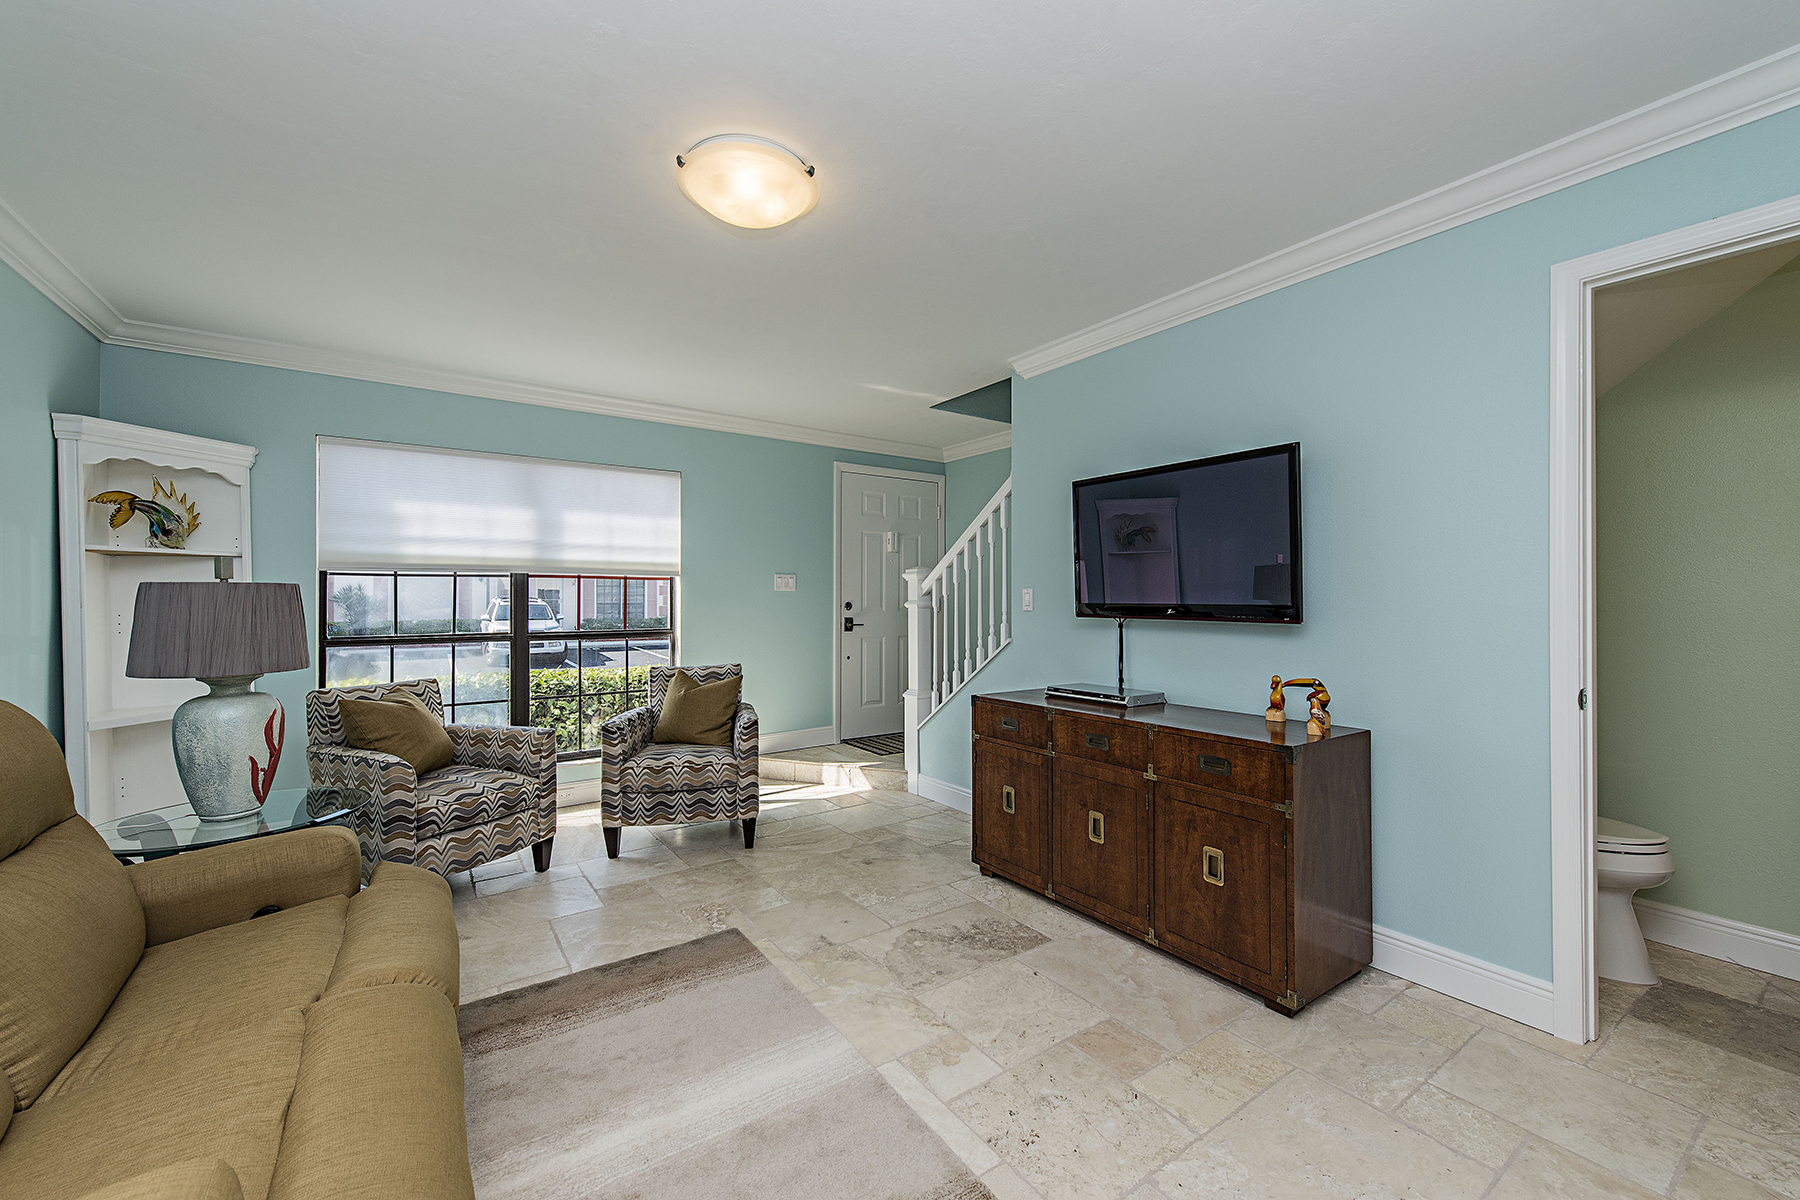 Condominium for Sale at MARCO ISLAND - SAN MARCO VILLAS 15 Marco Villas Dr O-15 Marco Island, Florida 34145 United States